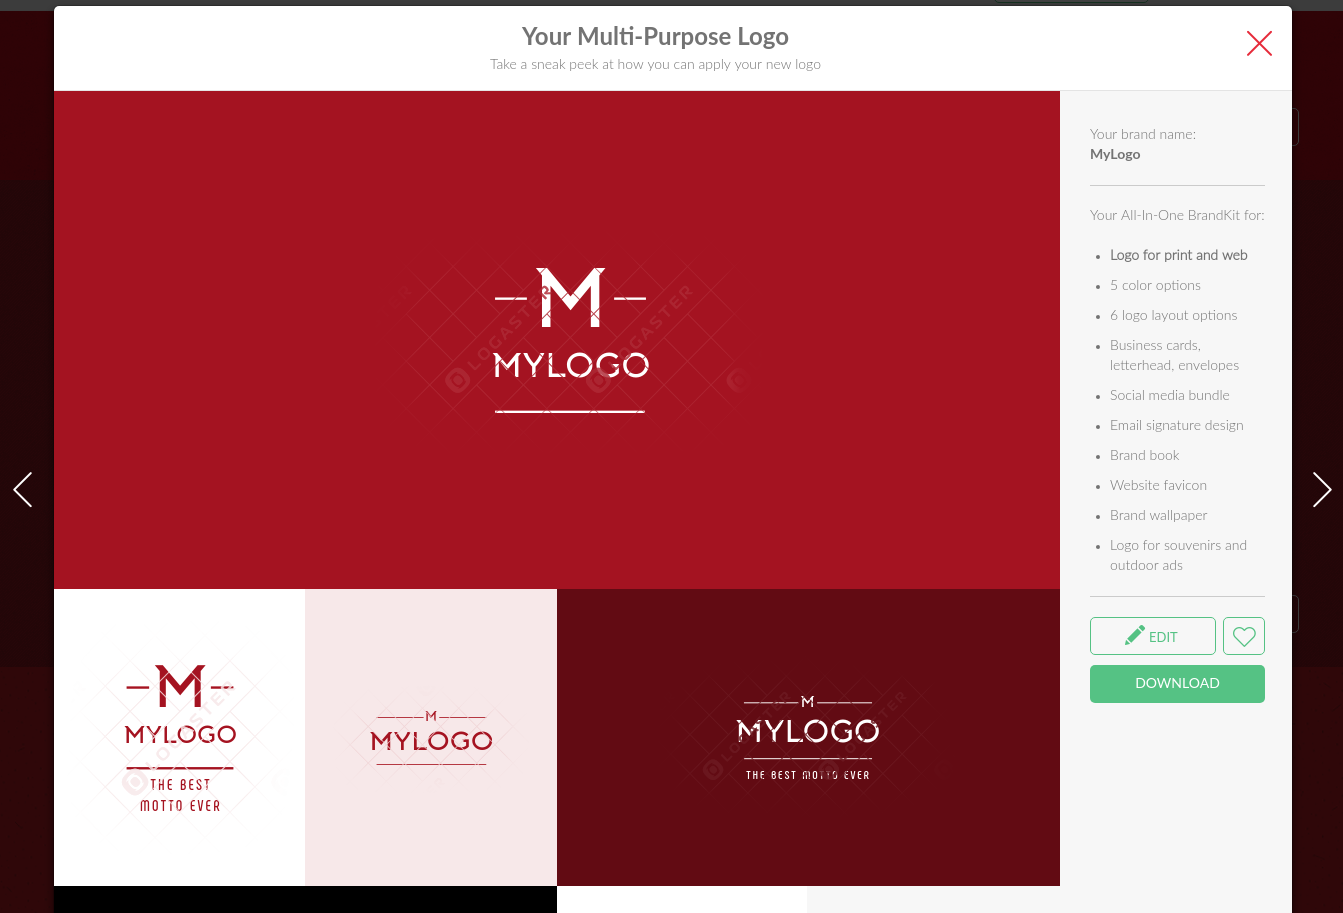 Design a logo for business cards, letterheads, websites, and more.